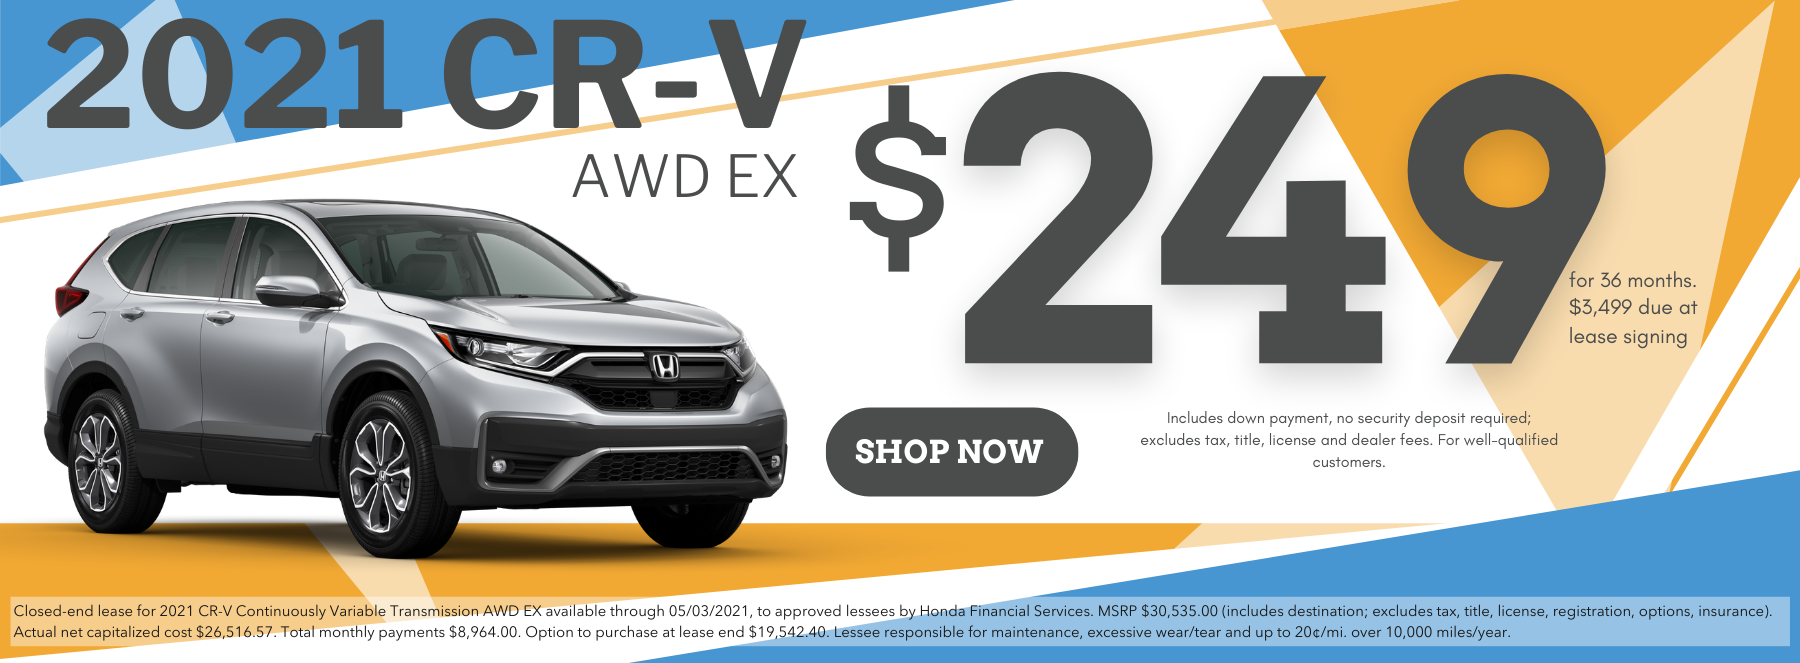 2021 CR-V Lease March